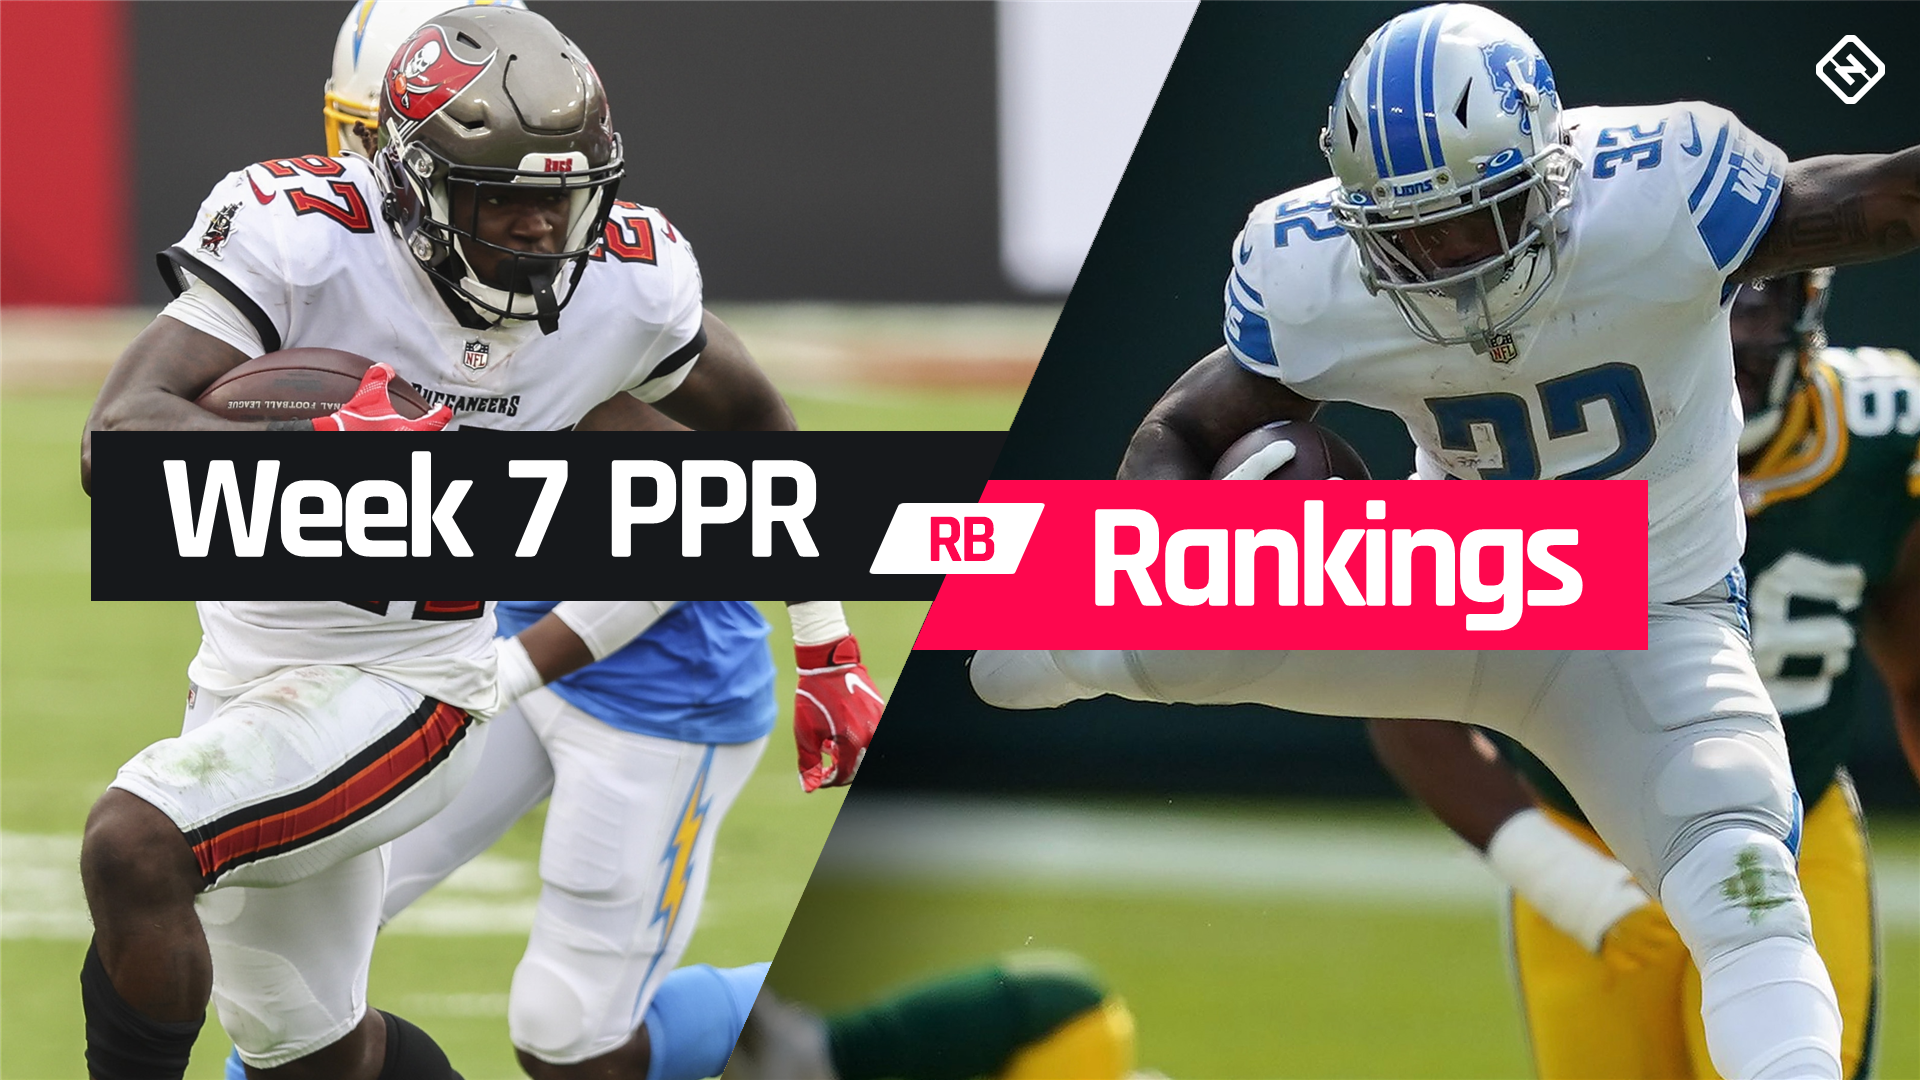 Week 7 Fantasy RB PPR Rankings: Must-starts, sleepers, potential busts